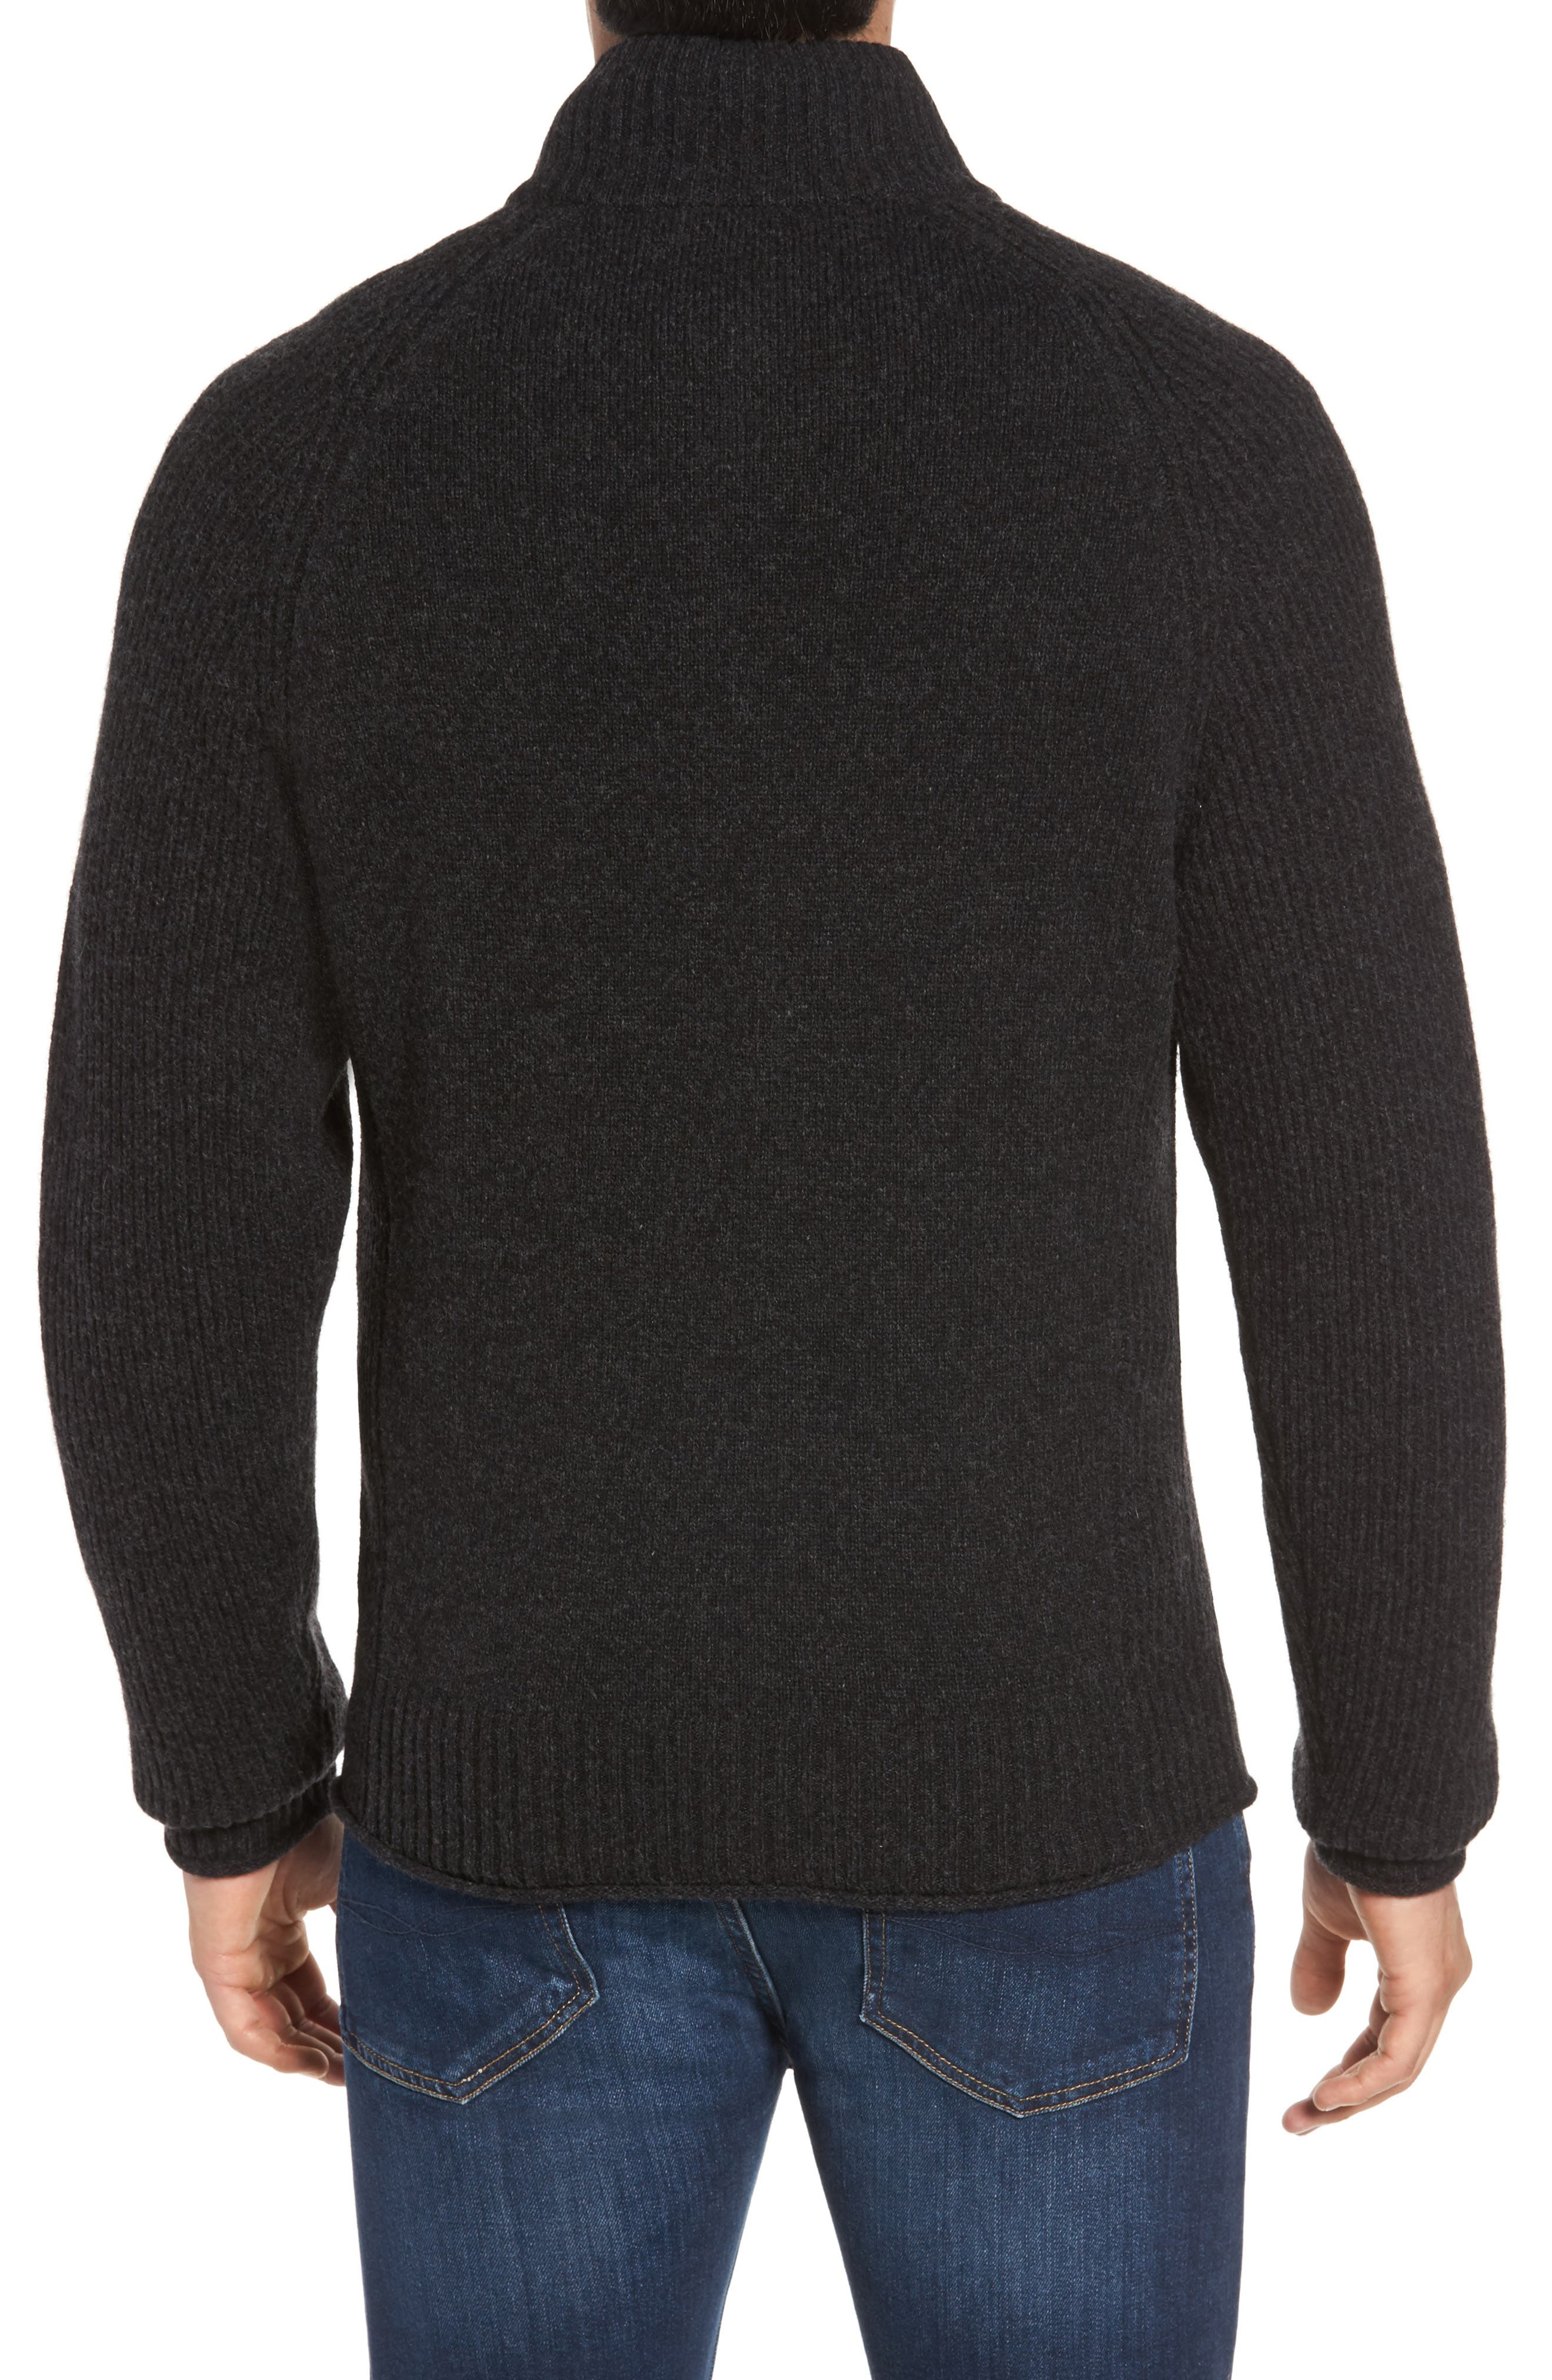 Stredwick Lambswool Sweater,                             Alternate thumbnail 2, color,                             021